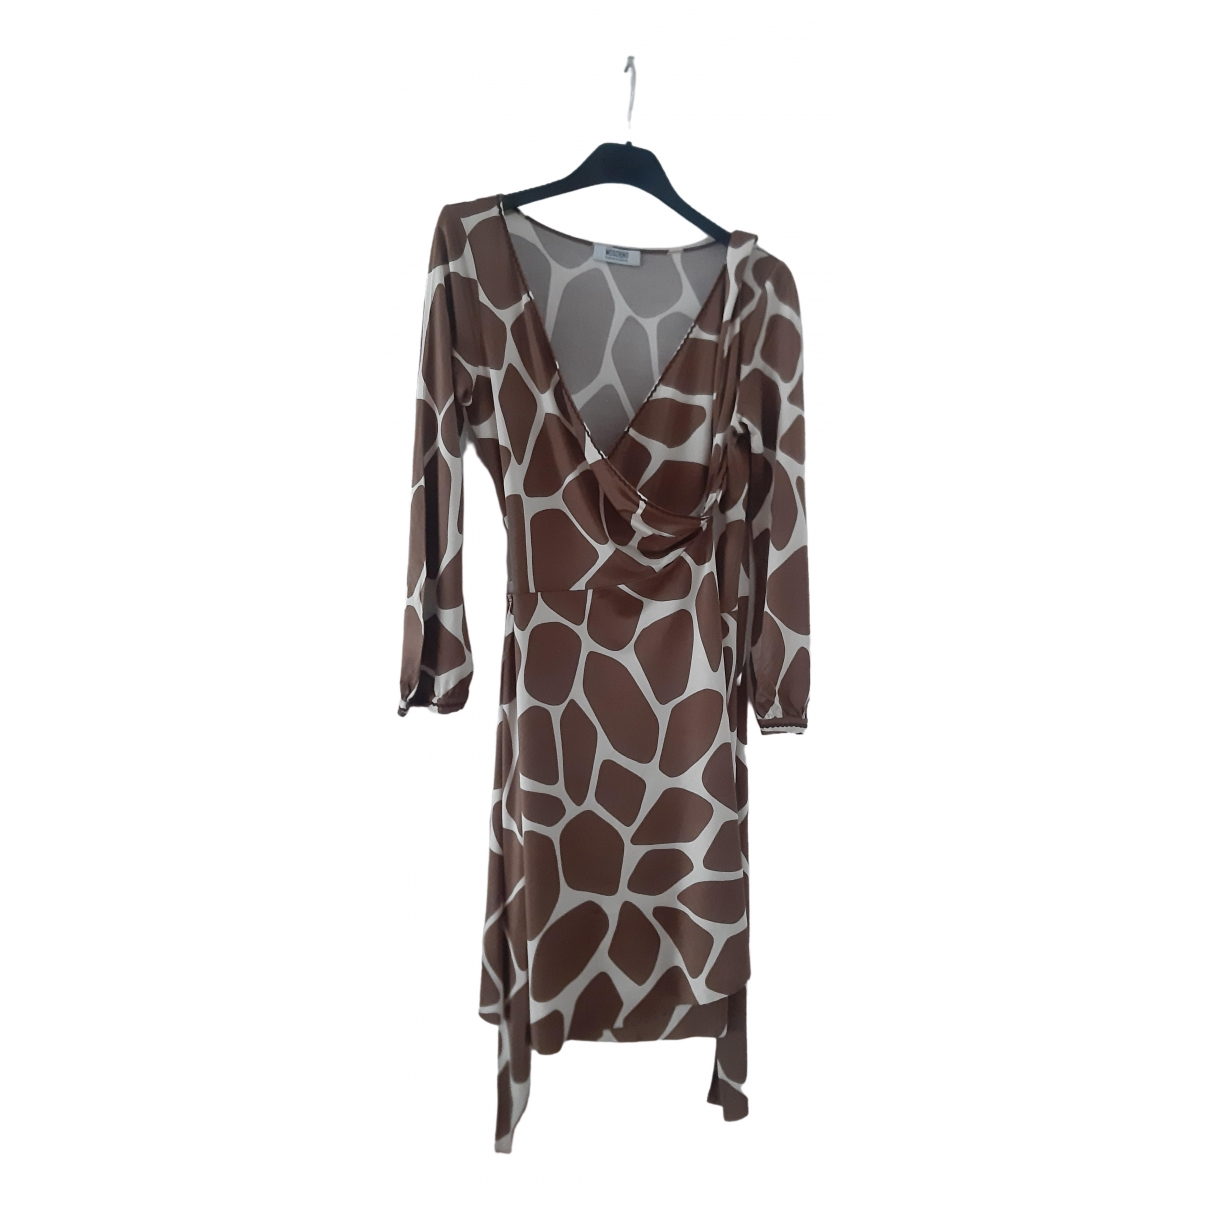 Moschino Cheap And Chic \N Kleid in  Kamel Seide